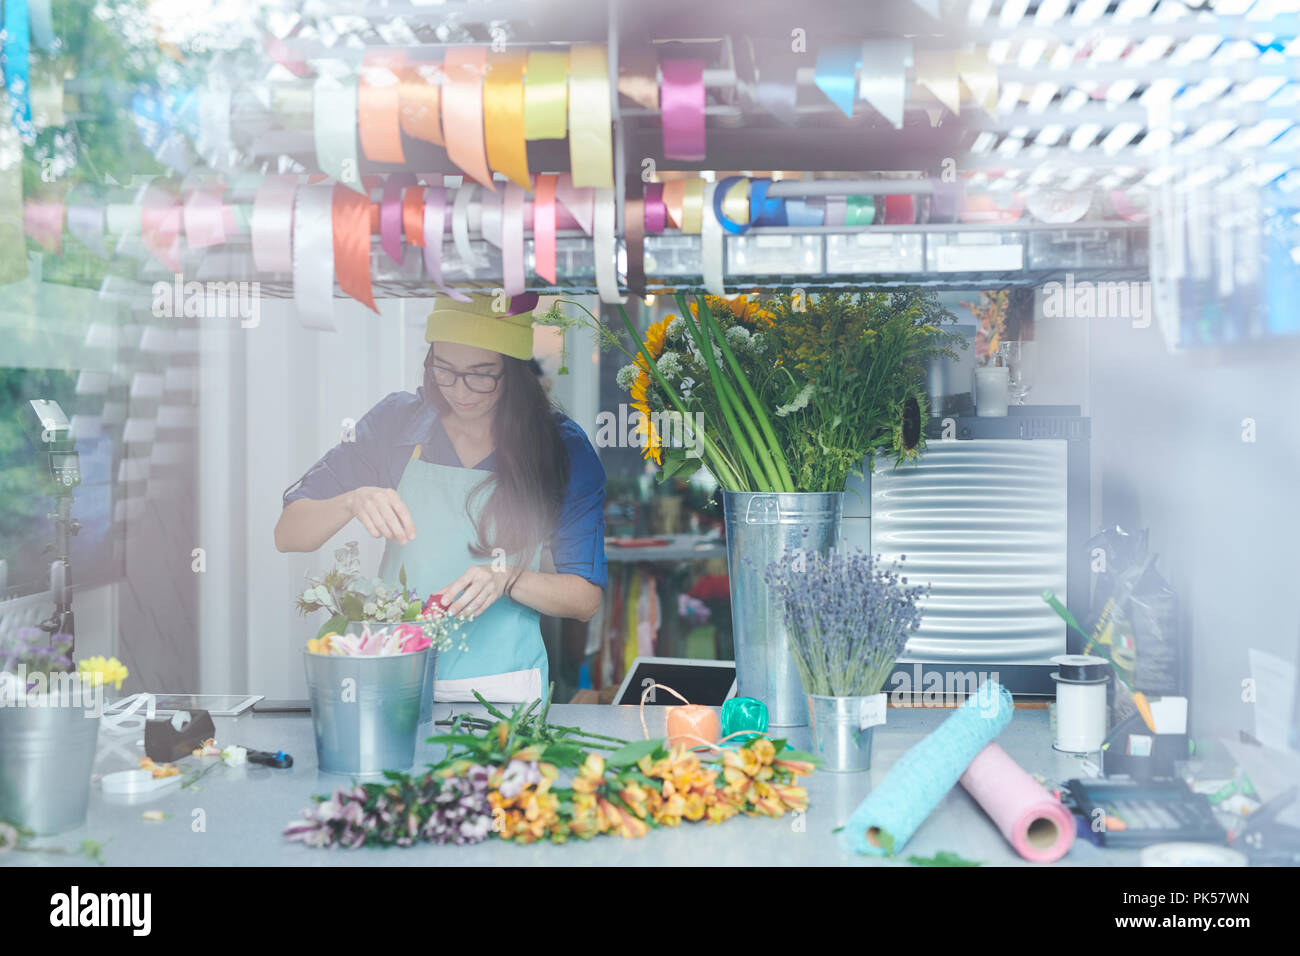 Contemporary Florist in Shop - Stock Image